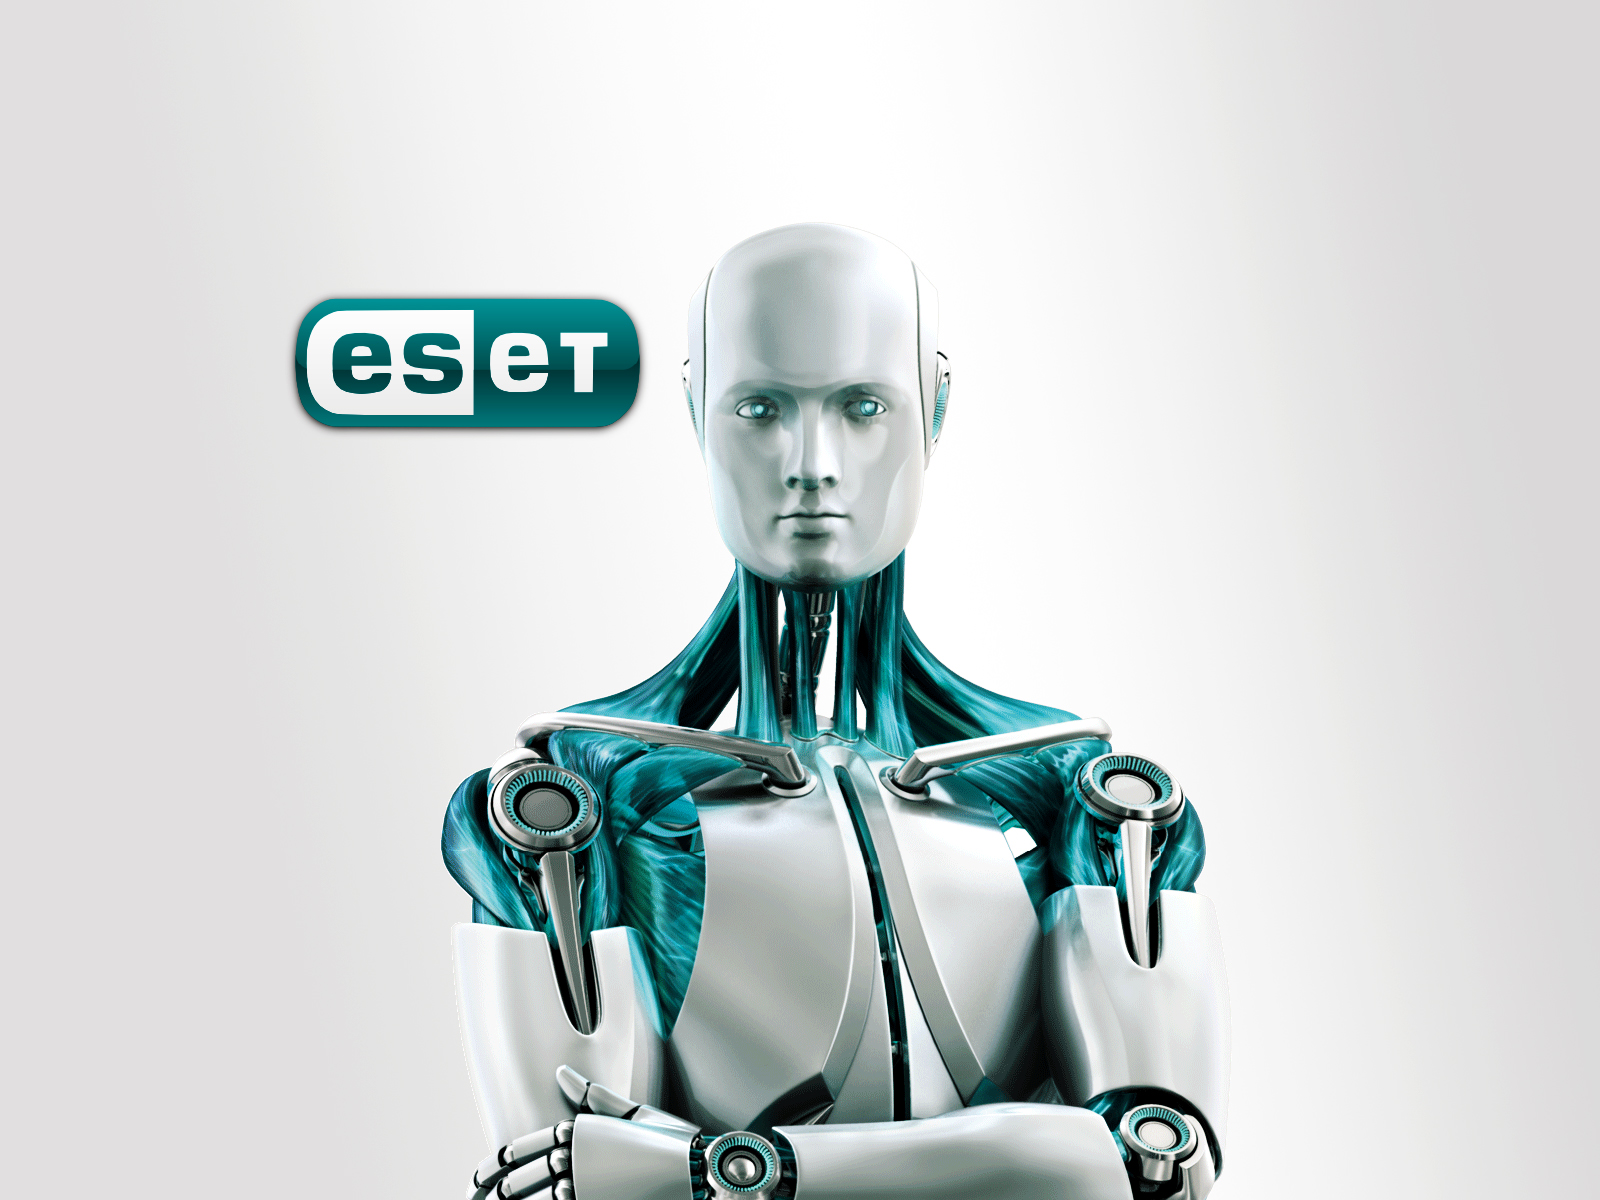 s1600/Smart_Eset_Nod32_Robot_and_Logo_HD_Wallpaper-Vvallpaper.Net.png